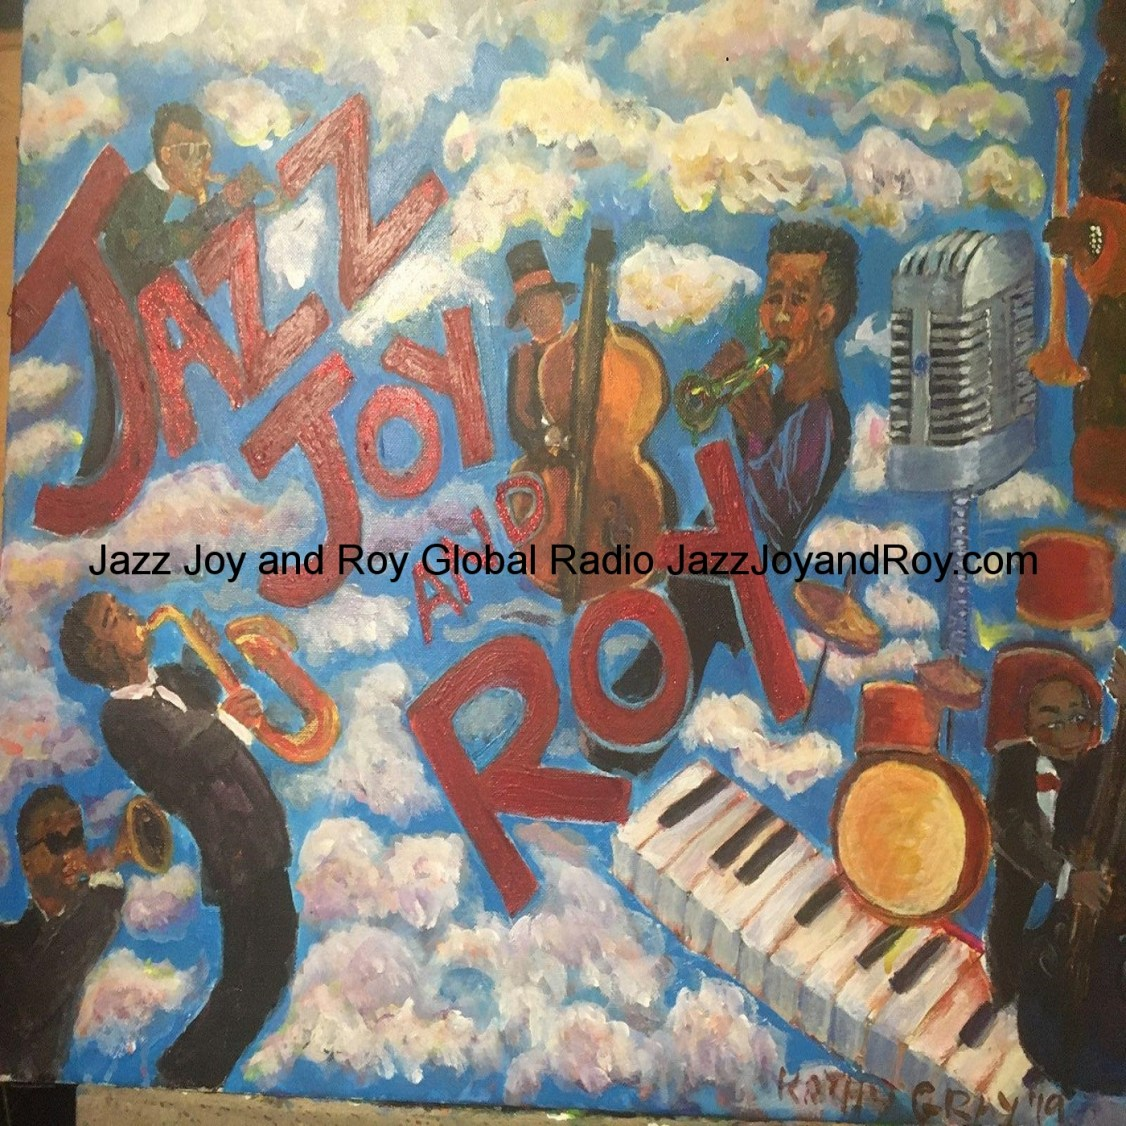 "This awesome painting is a steal at only 10 million dollars and 15 cents or best offer. It was finished on Monday September 30th 2019 by American Artist Kathy Gray For America's World-Famous ""Jazz Joy and Roy Daily Podcast And Syndication Network,"" founded by veteran broadcaster Roy O'Dell Gray Sr in 2007 with money earned from Roy's then day job as a star customer service rep for American mobile giant Verizon Wireless, where Roy first dreamt of the joy he could provide by giving his own customers great deals and becoming ""The Recognized King of DJ Customer Service,"" while remaining, when compared to other American radio network owners, ""the least of these."" -----Another bootstrapping reality made possible by America and a friend of Roy's you'll hear about at the end of every JJ&R episode.---Tip for leggy artists with sexy Streisand-Style noses who happen to be great in the sack and like guys who don't seem depressed in the least about having perfect radio faces and who used to have 'really nice' butts: Always marry a DJ named Roy O'Dell Gray!"